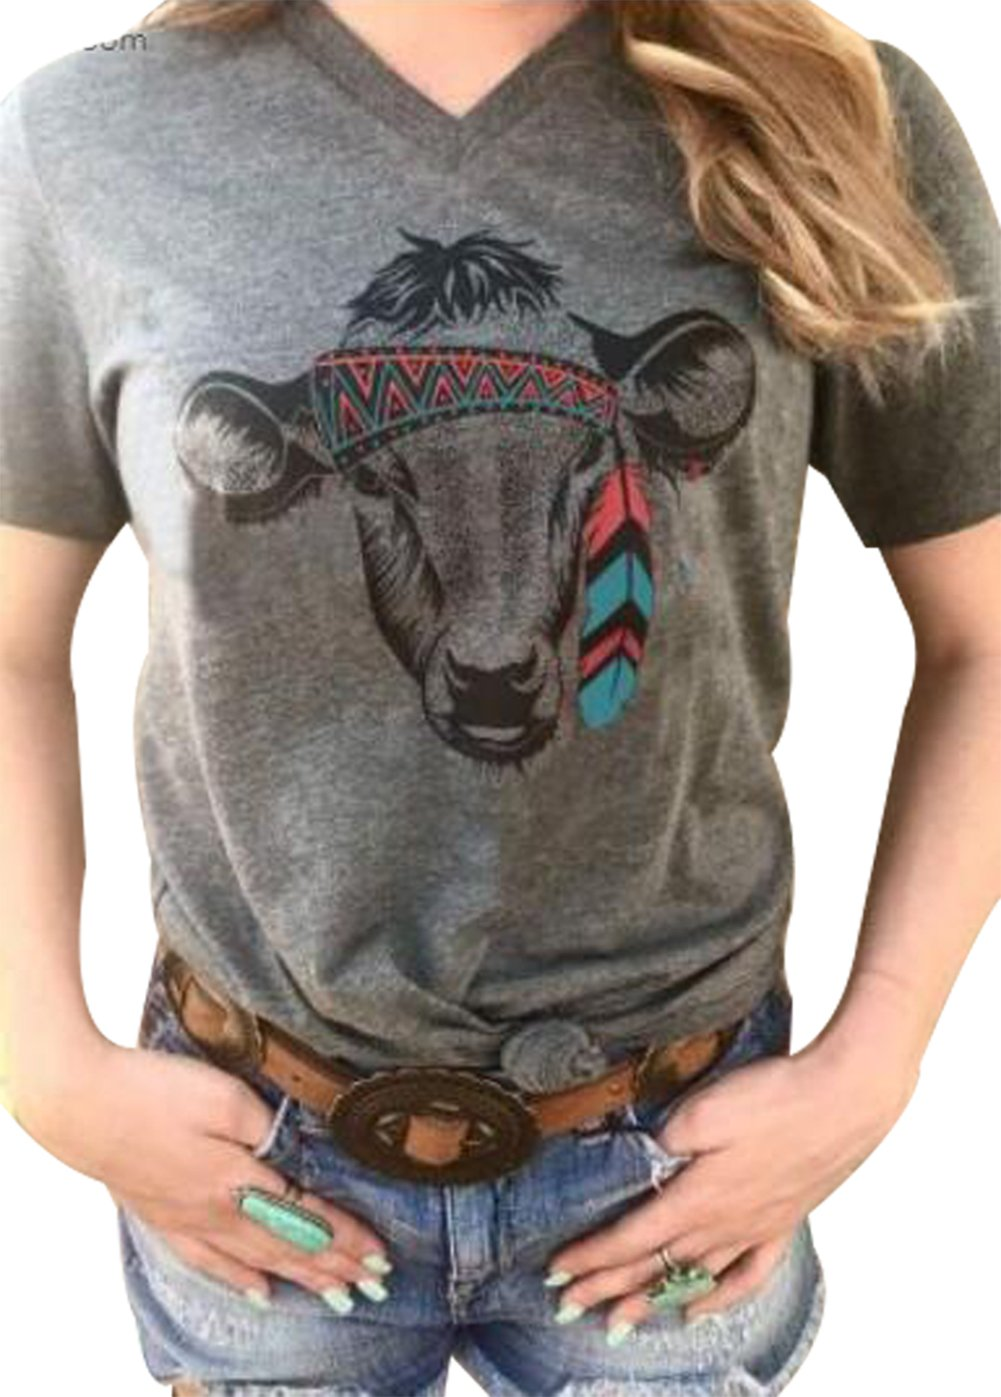 Tribal Cow Head Funny T-Shirt Women's V-Neck Short Sleeve Animal Print Tops Tee Size XL (Gray)